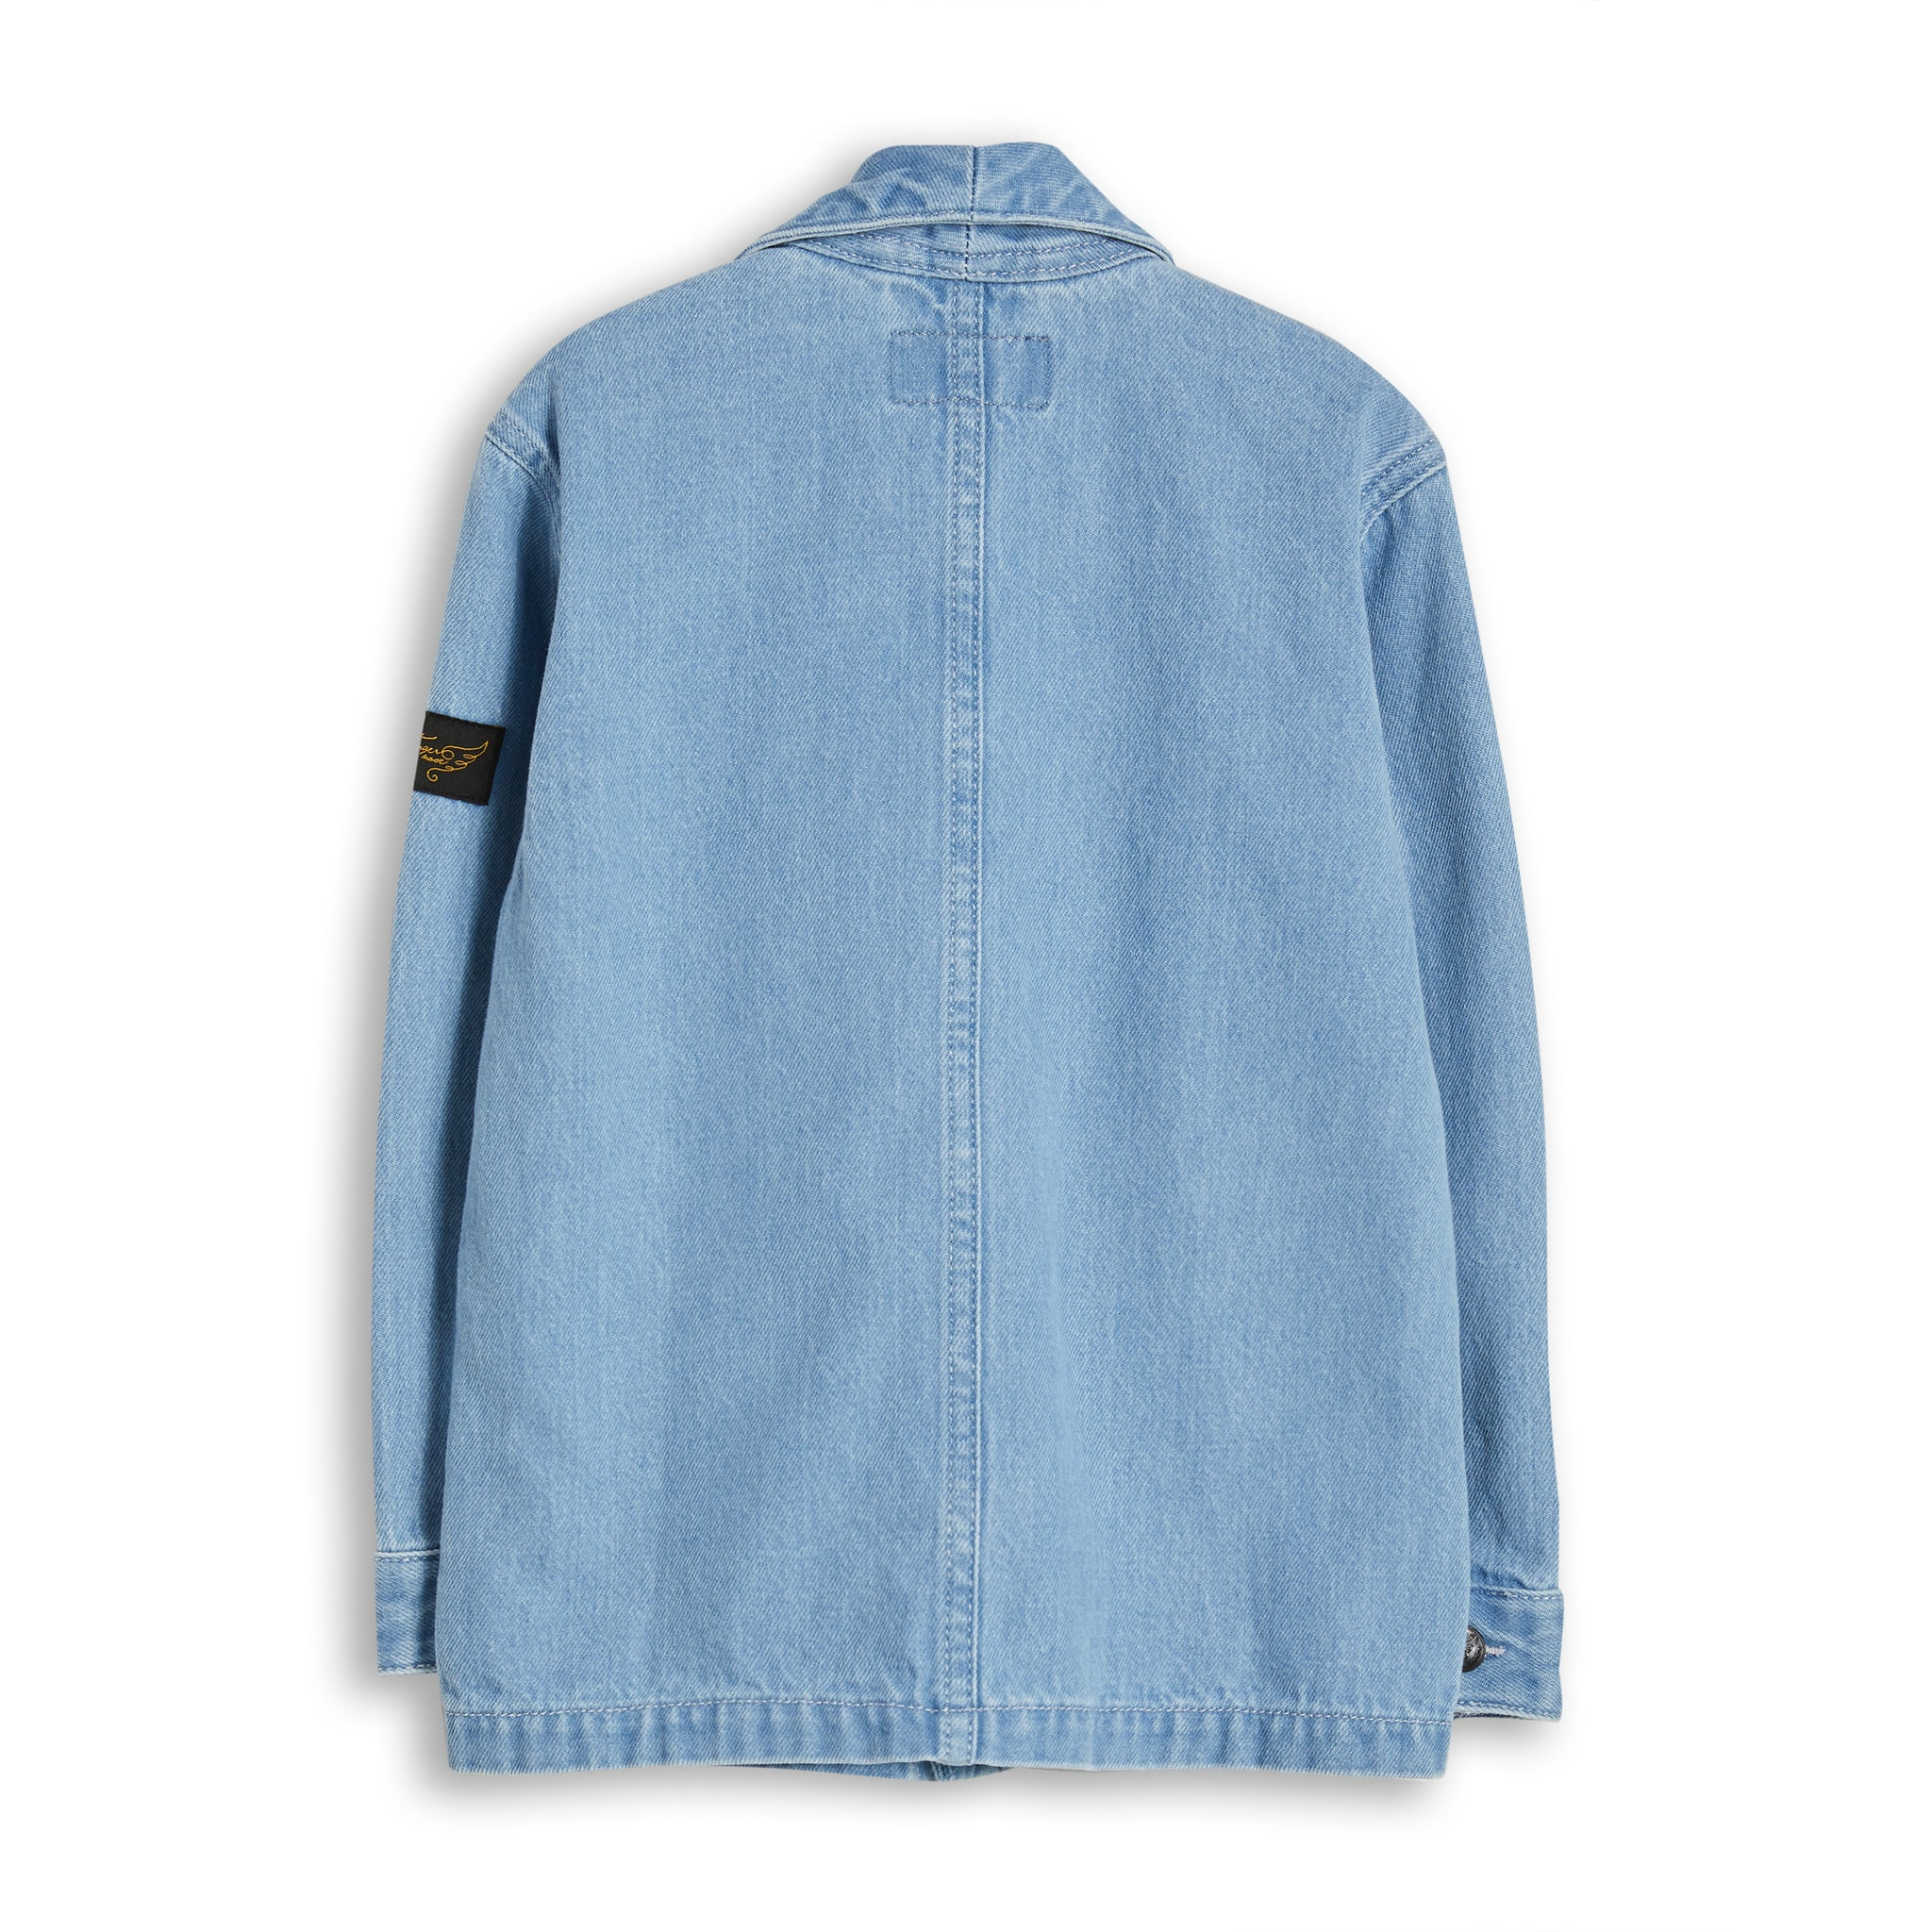 JEFF Bleached Blue - Denim Jacket 2